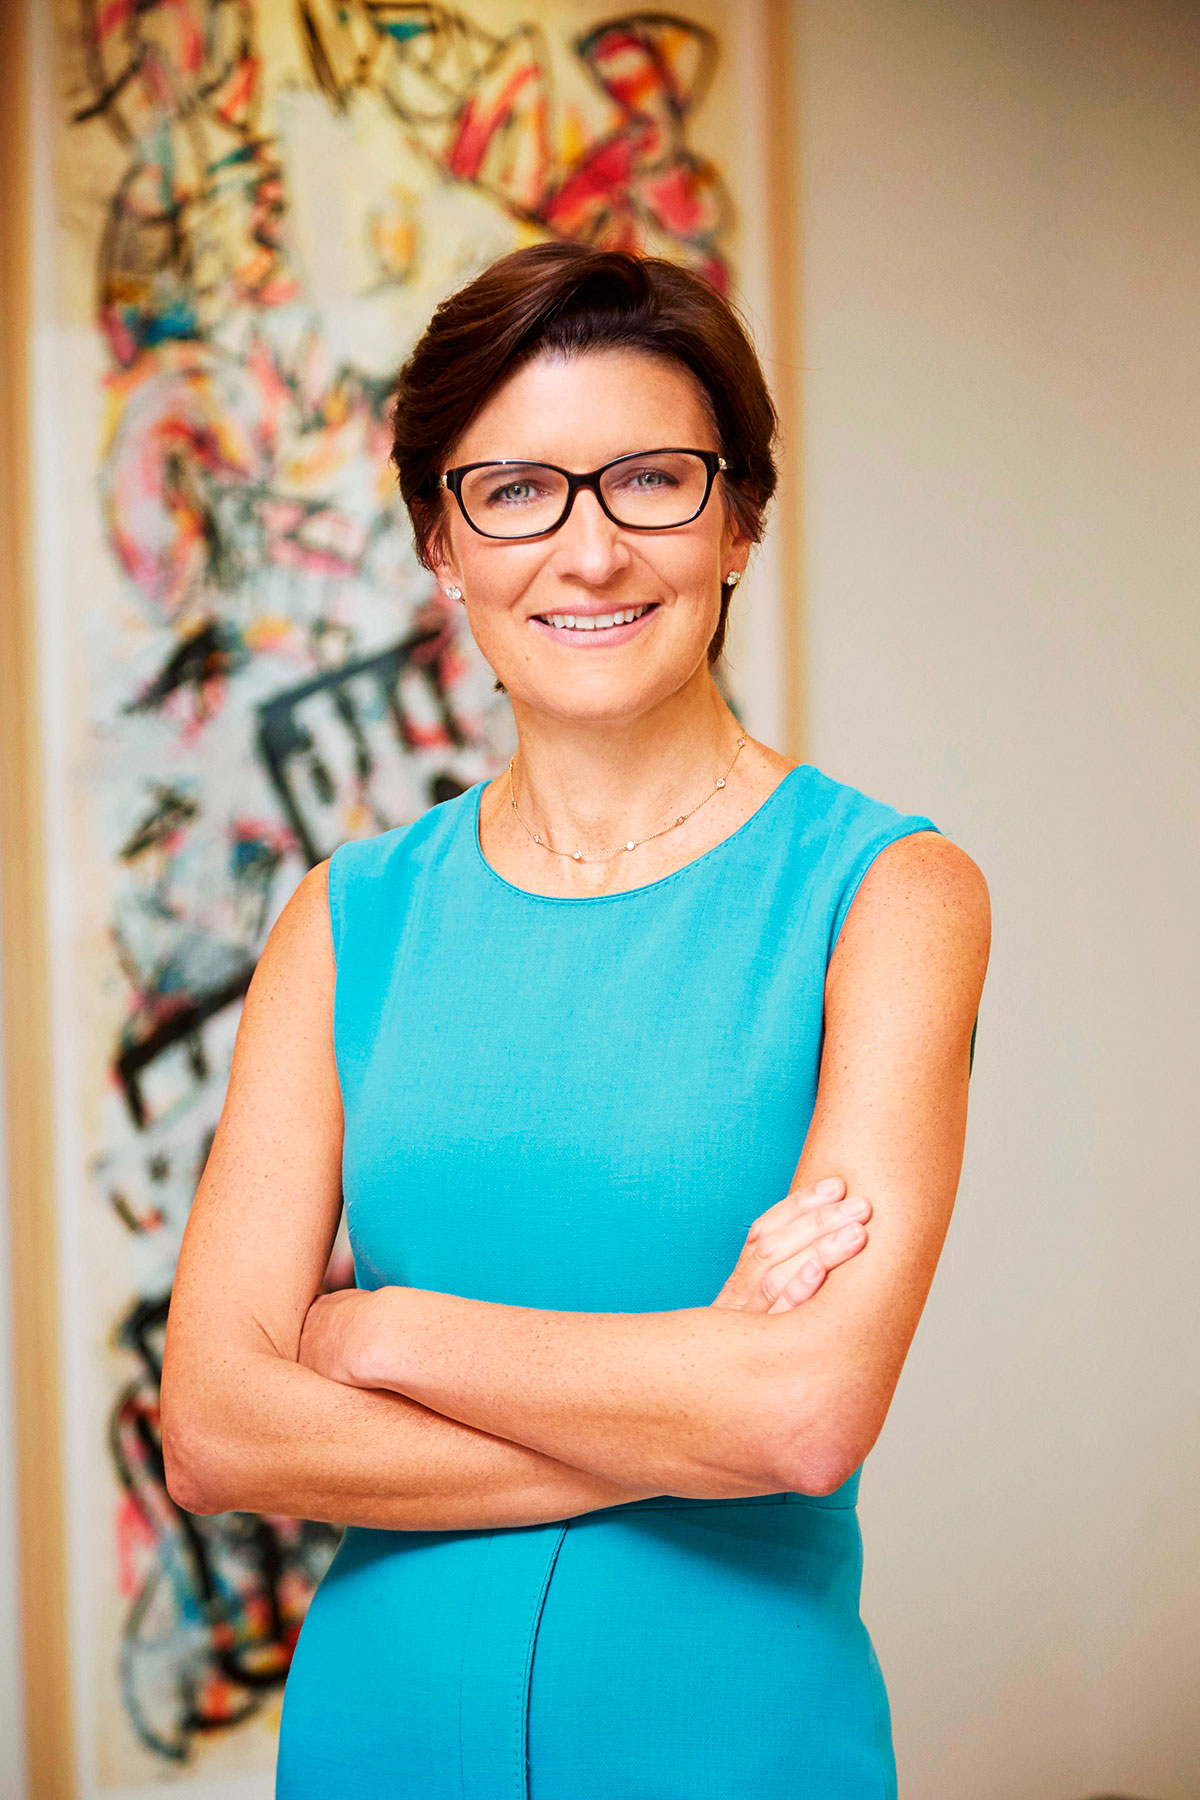 Citigroup named Jane Fraser as its next chief executive on September 10, 2020, tapping a woman to lead a giant Wall Street bank for the first time.